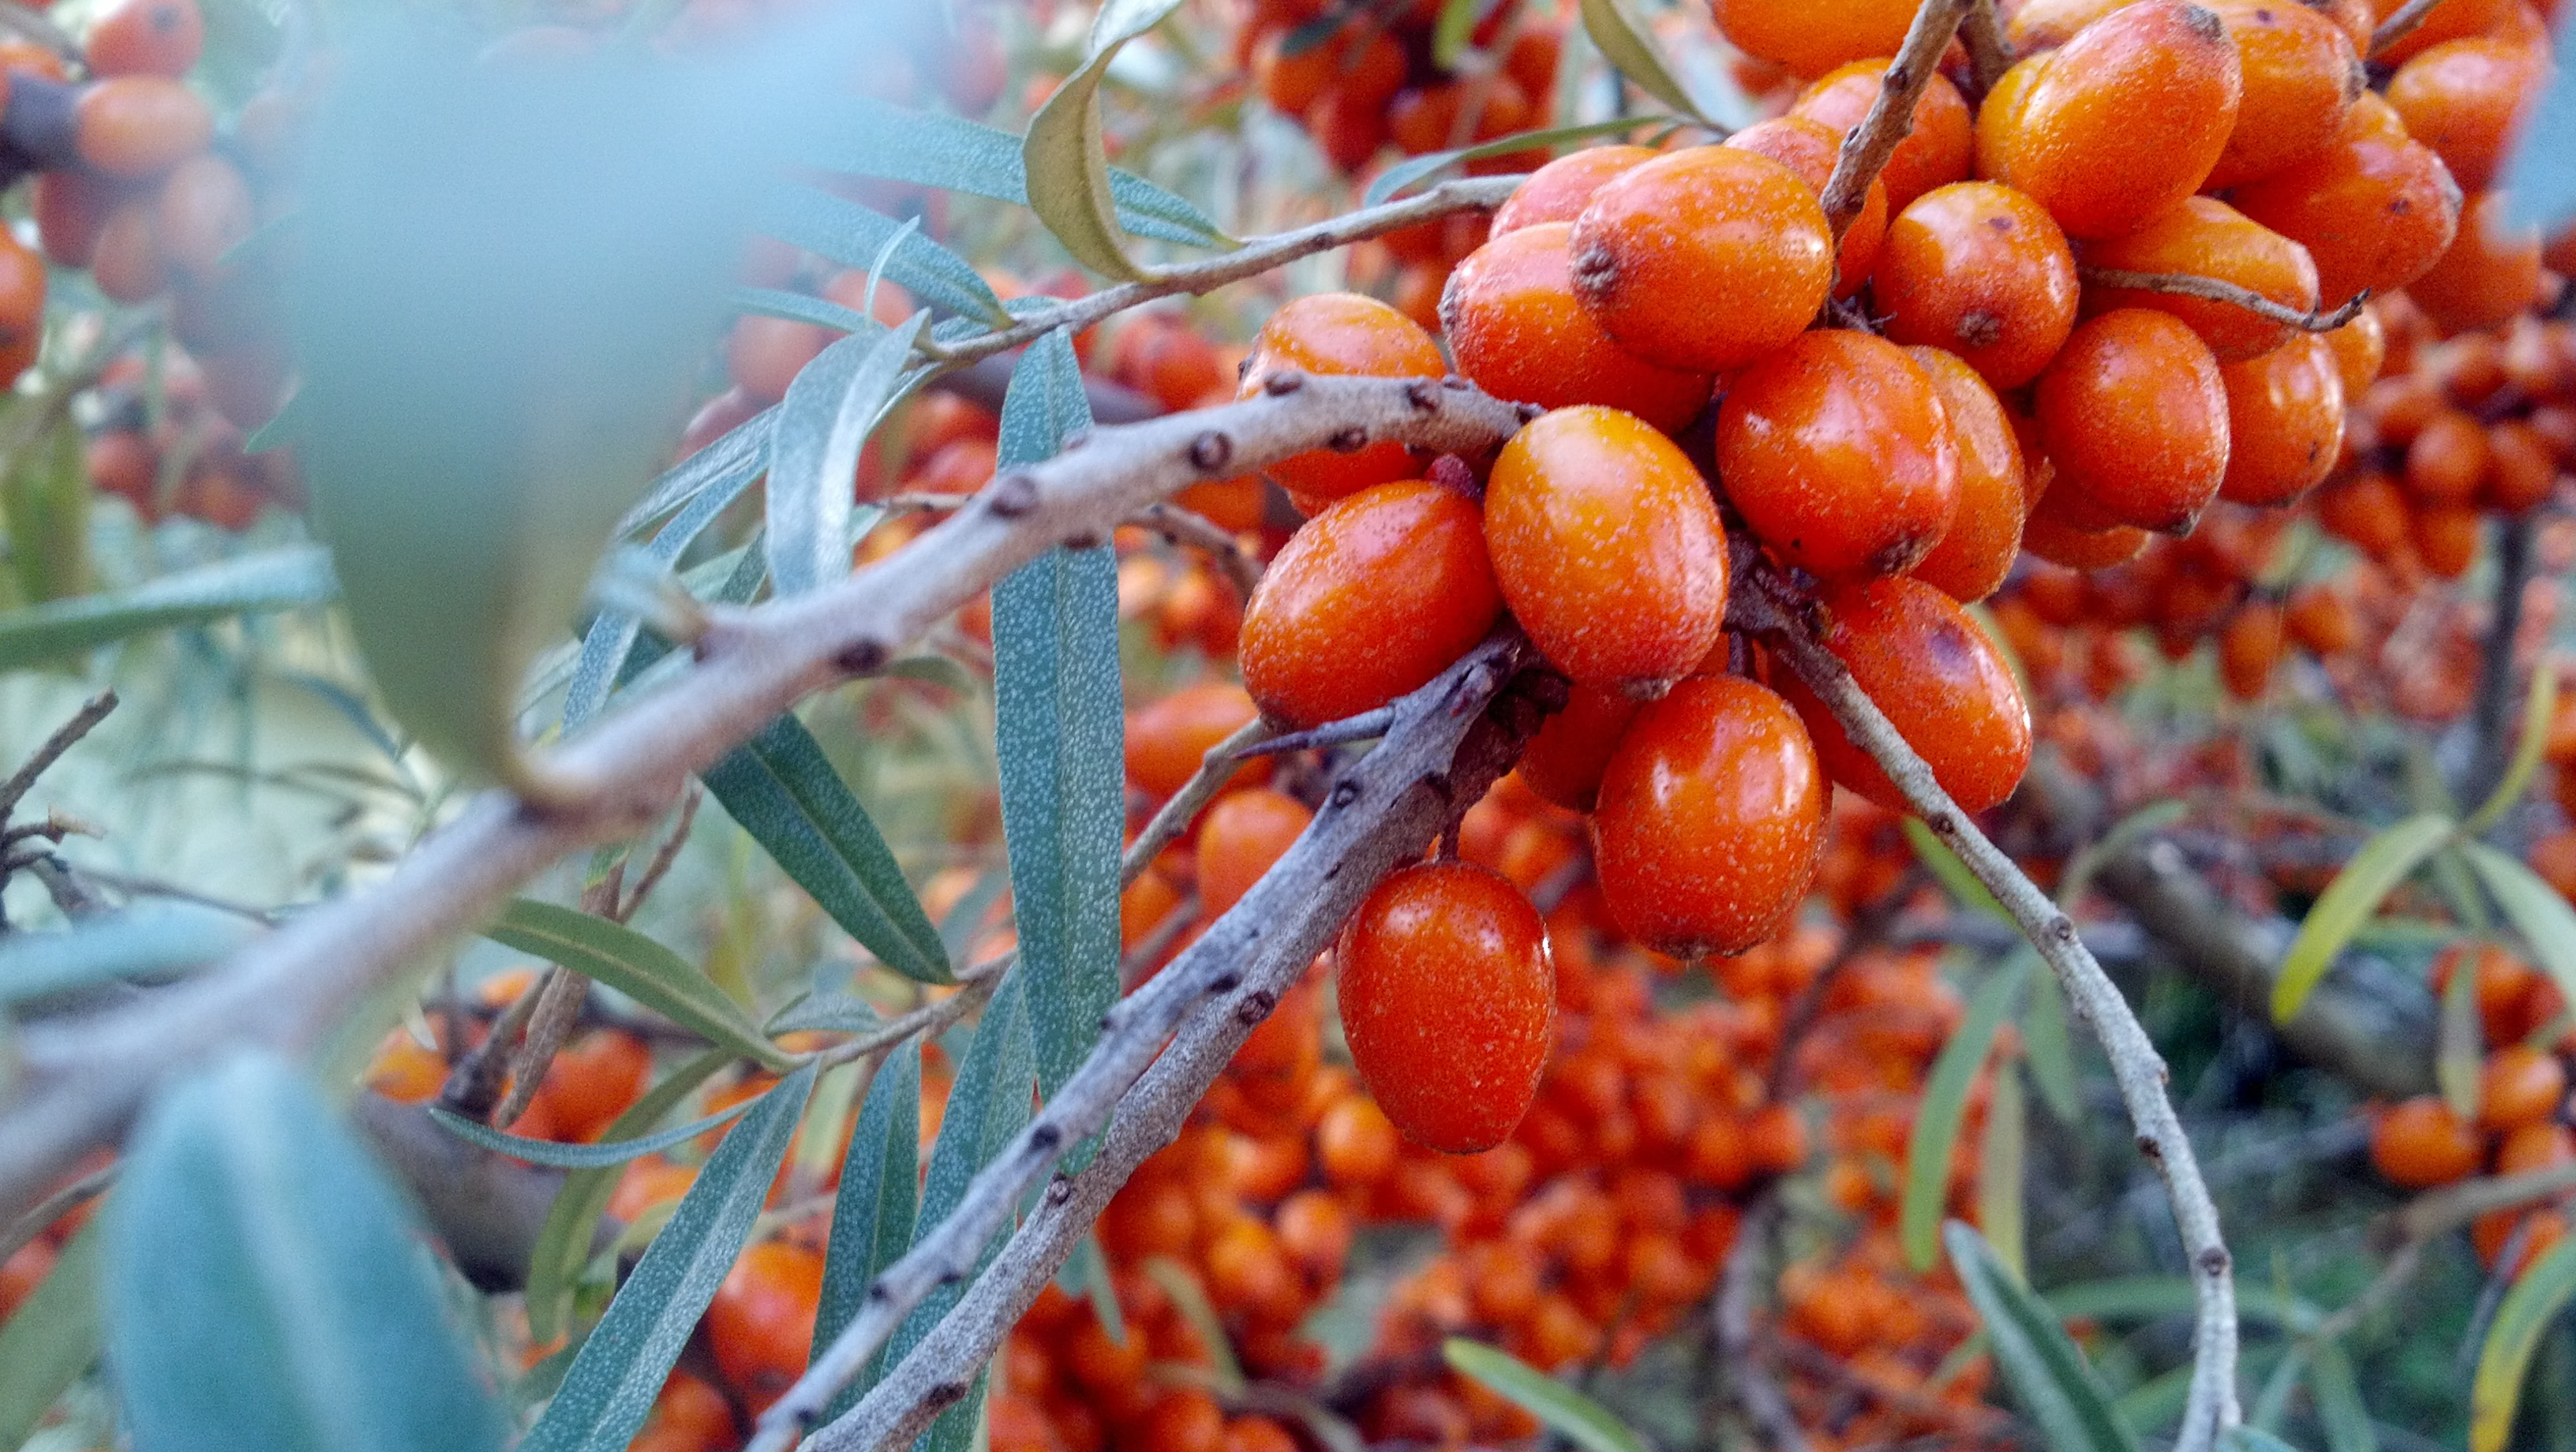 What does sea buckthorn taste like